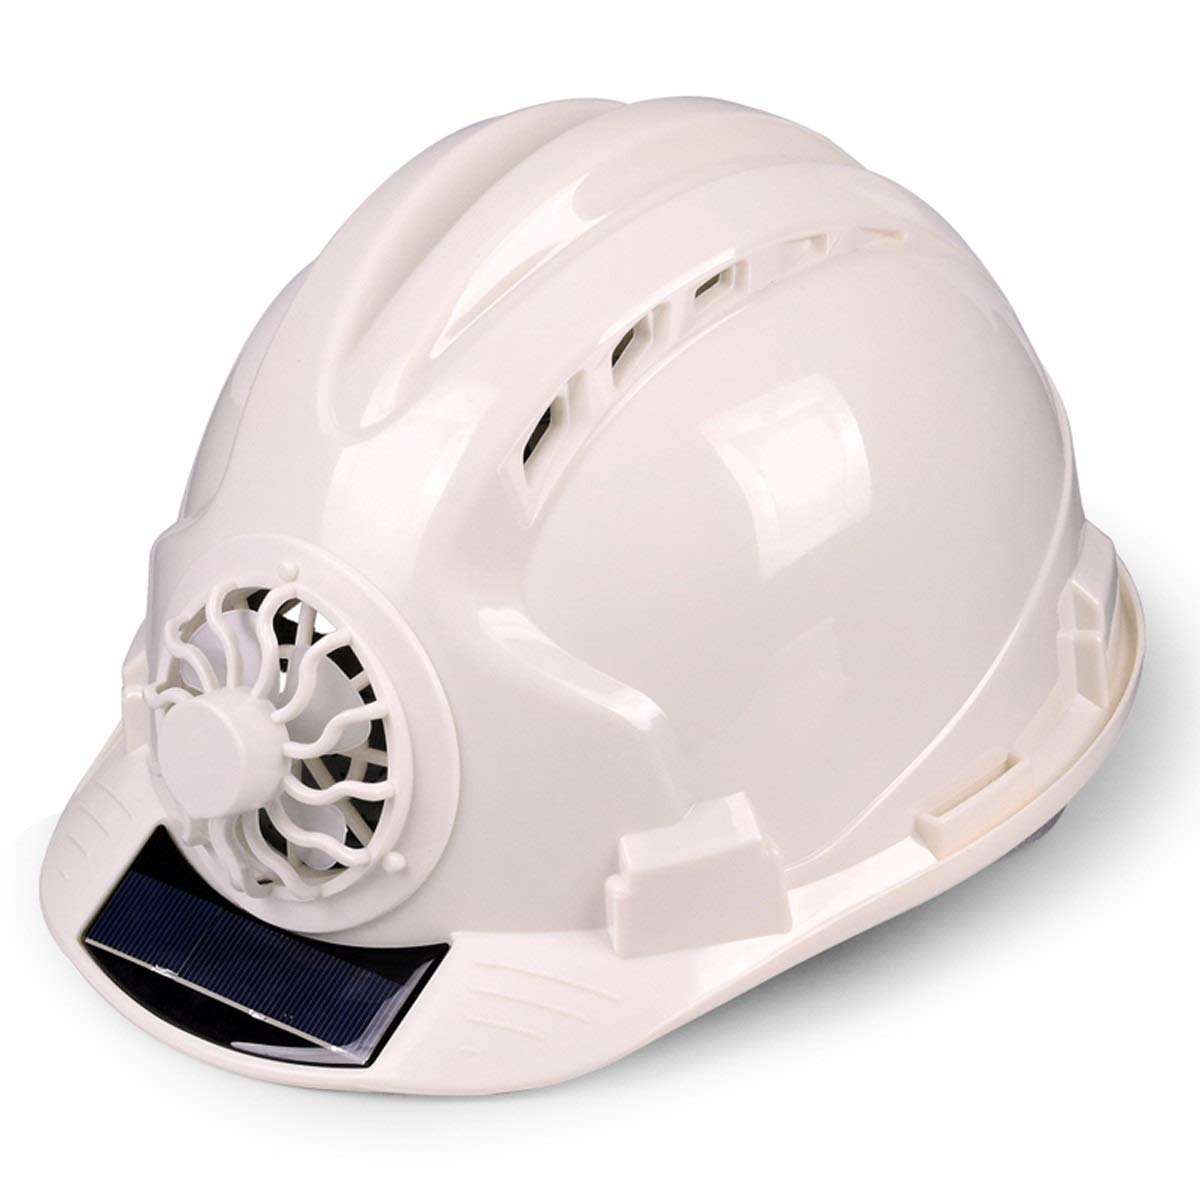 Adjustable Construction Helmet With 'Solar Fan' Vents-Meets ANSI Standards-Personal Protective Equipment, for Construction,Home Improvement And DIY Projects/PP (Color : White)